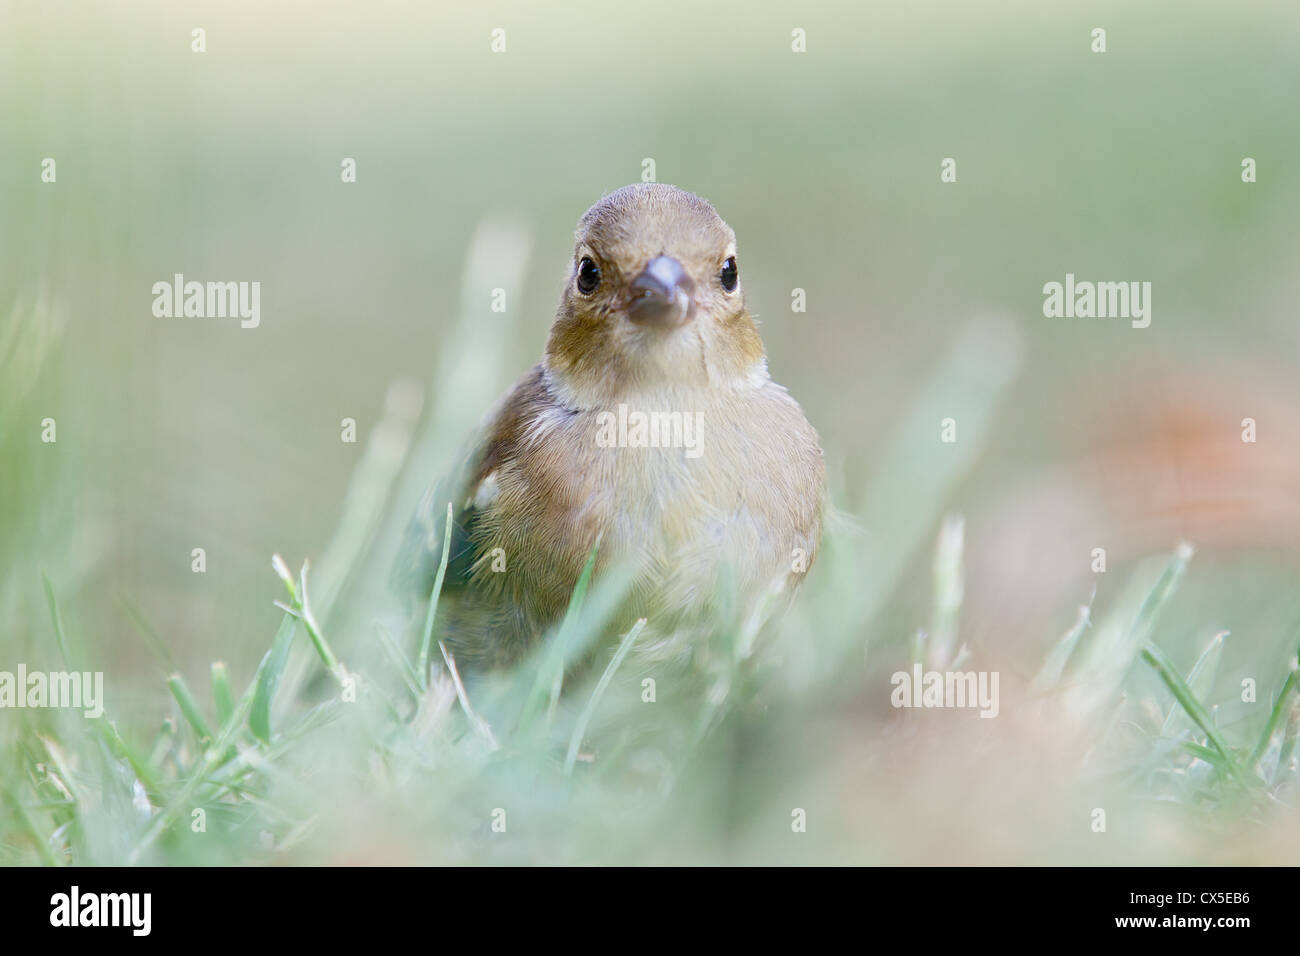 Young female chaffinch (Fringilla coelebs), Sussex, England. - Stock Image